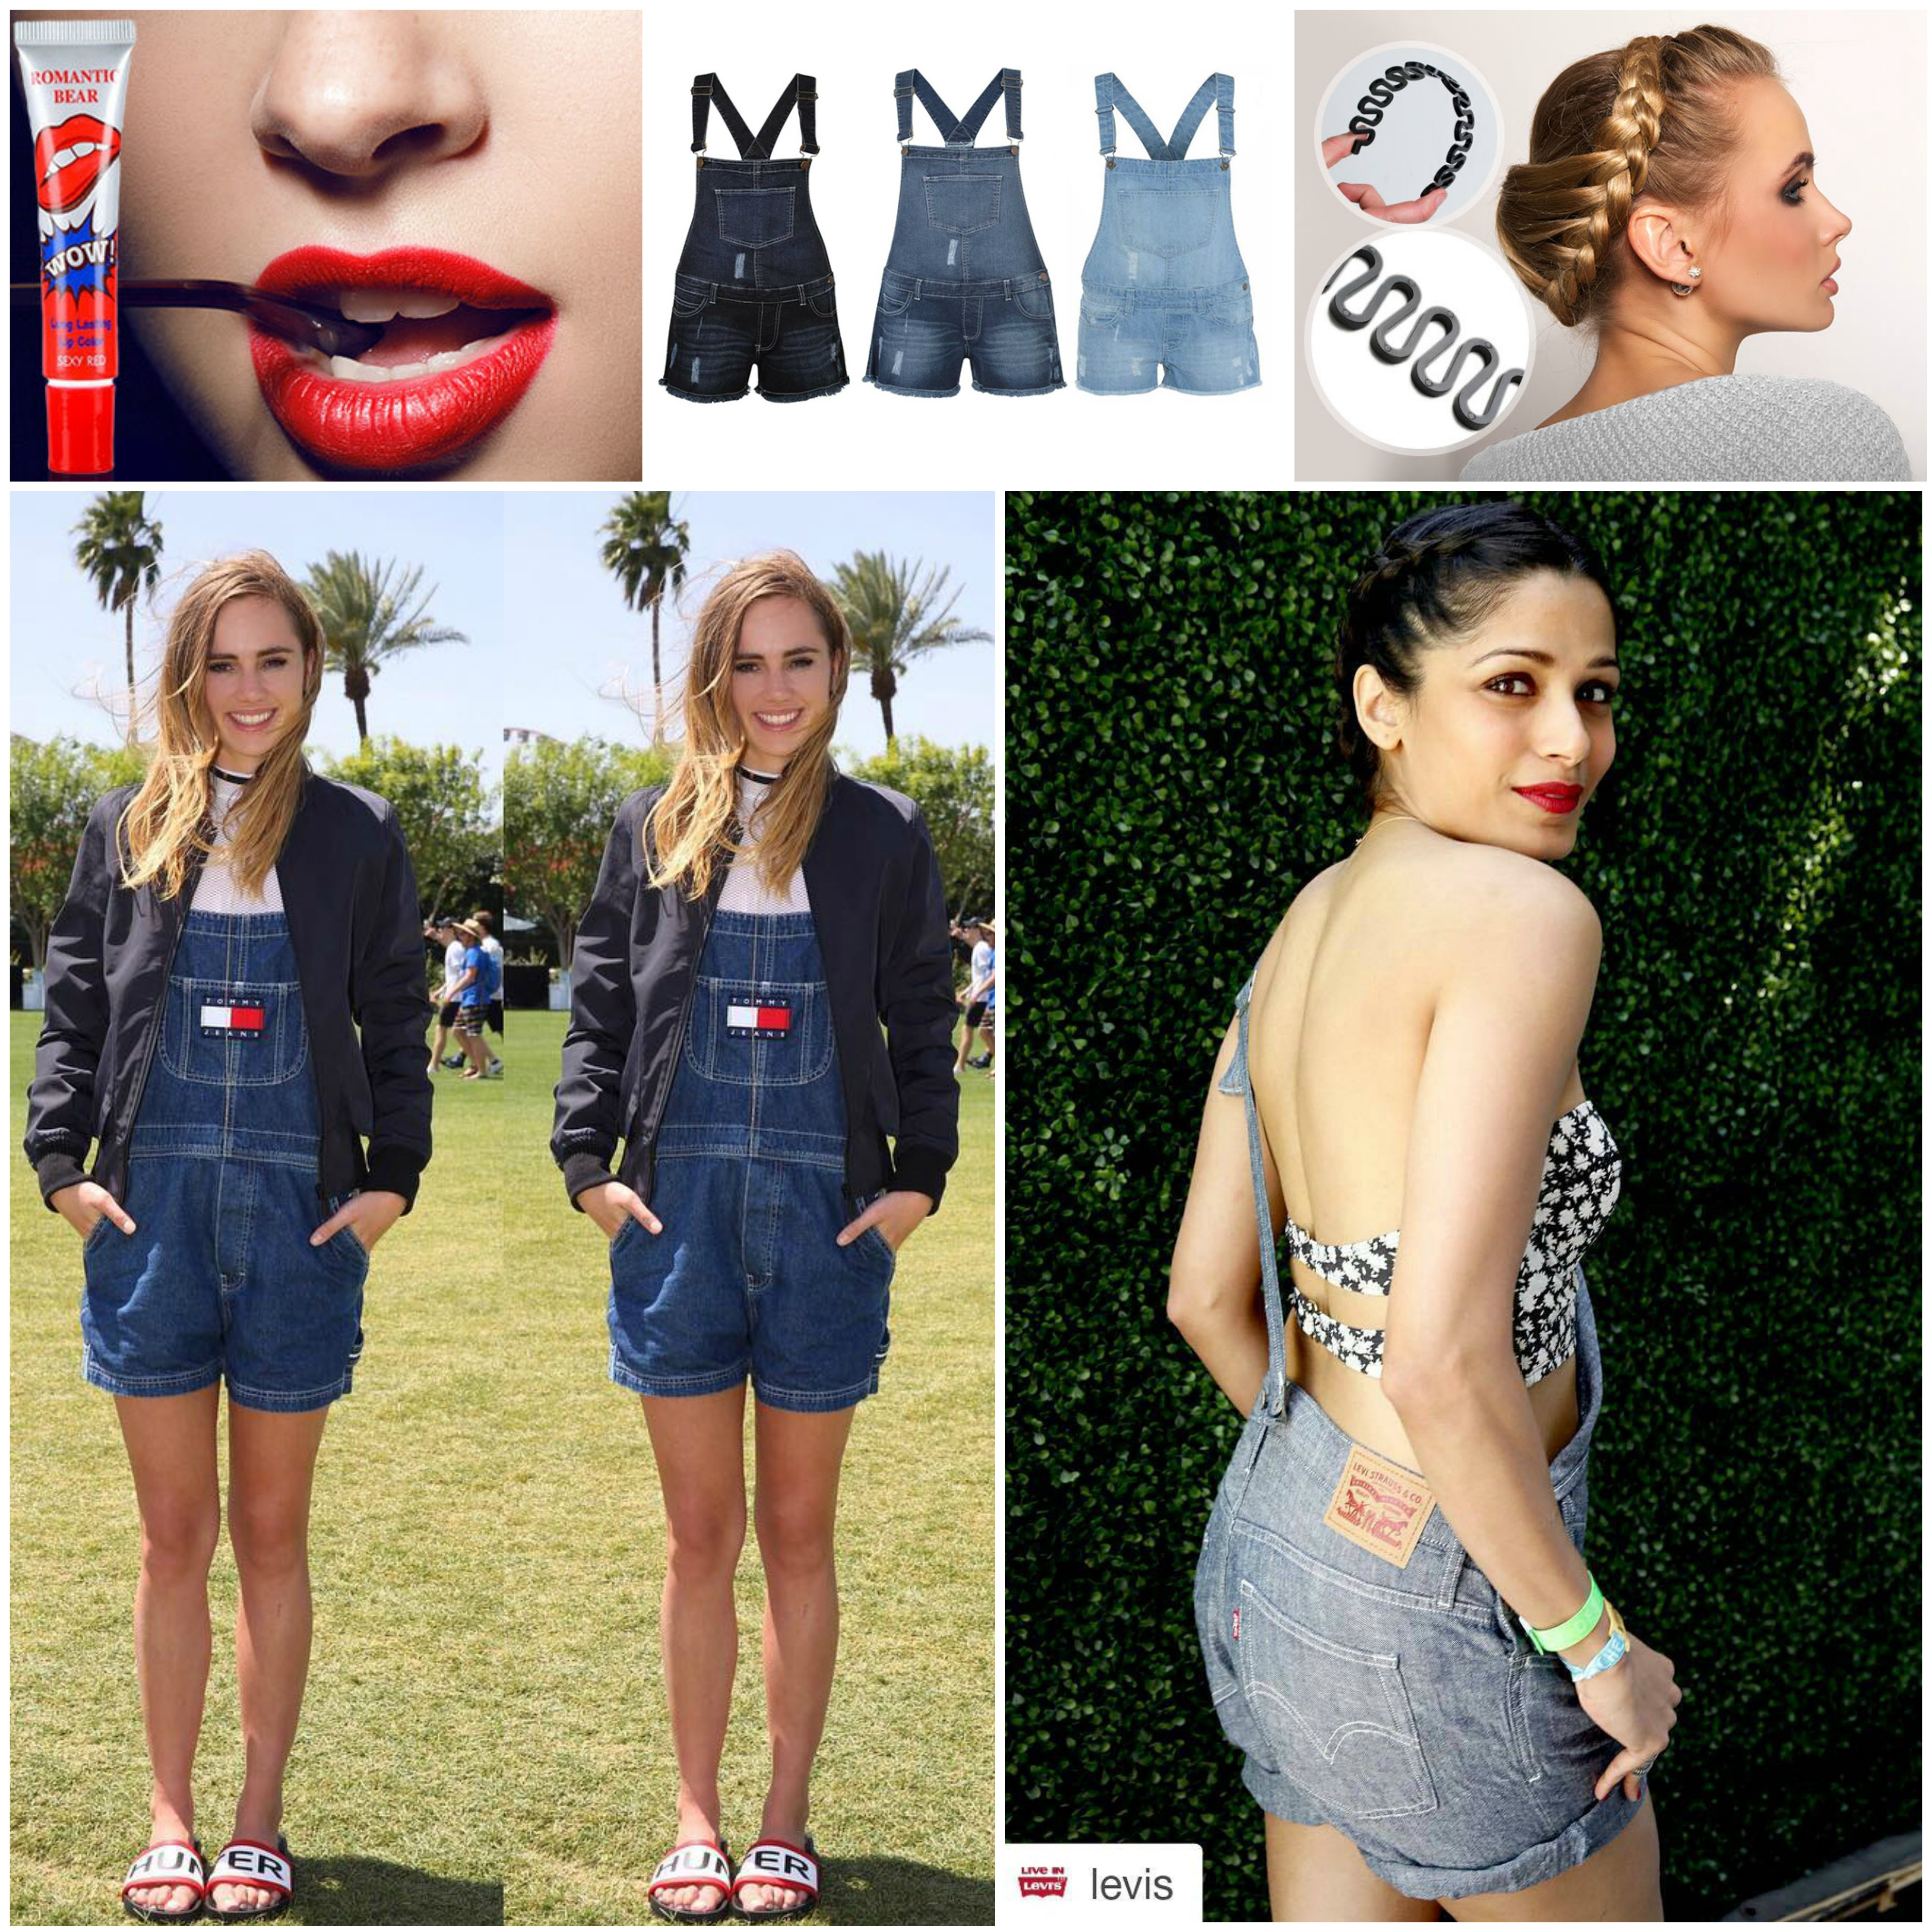 Suki Waterhouse, Frieda Pinto, Festival Fashion, Coachella, Denim Dungaree Shorts, Short Dungarees, Braided, Plaits